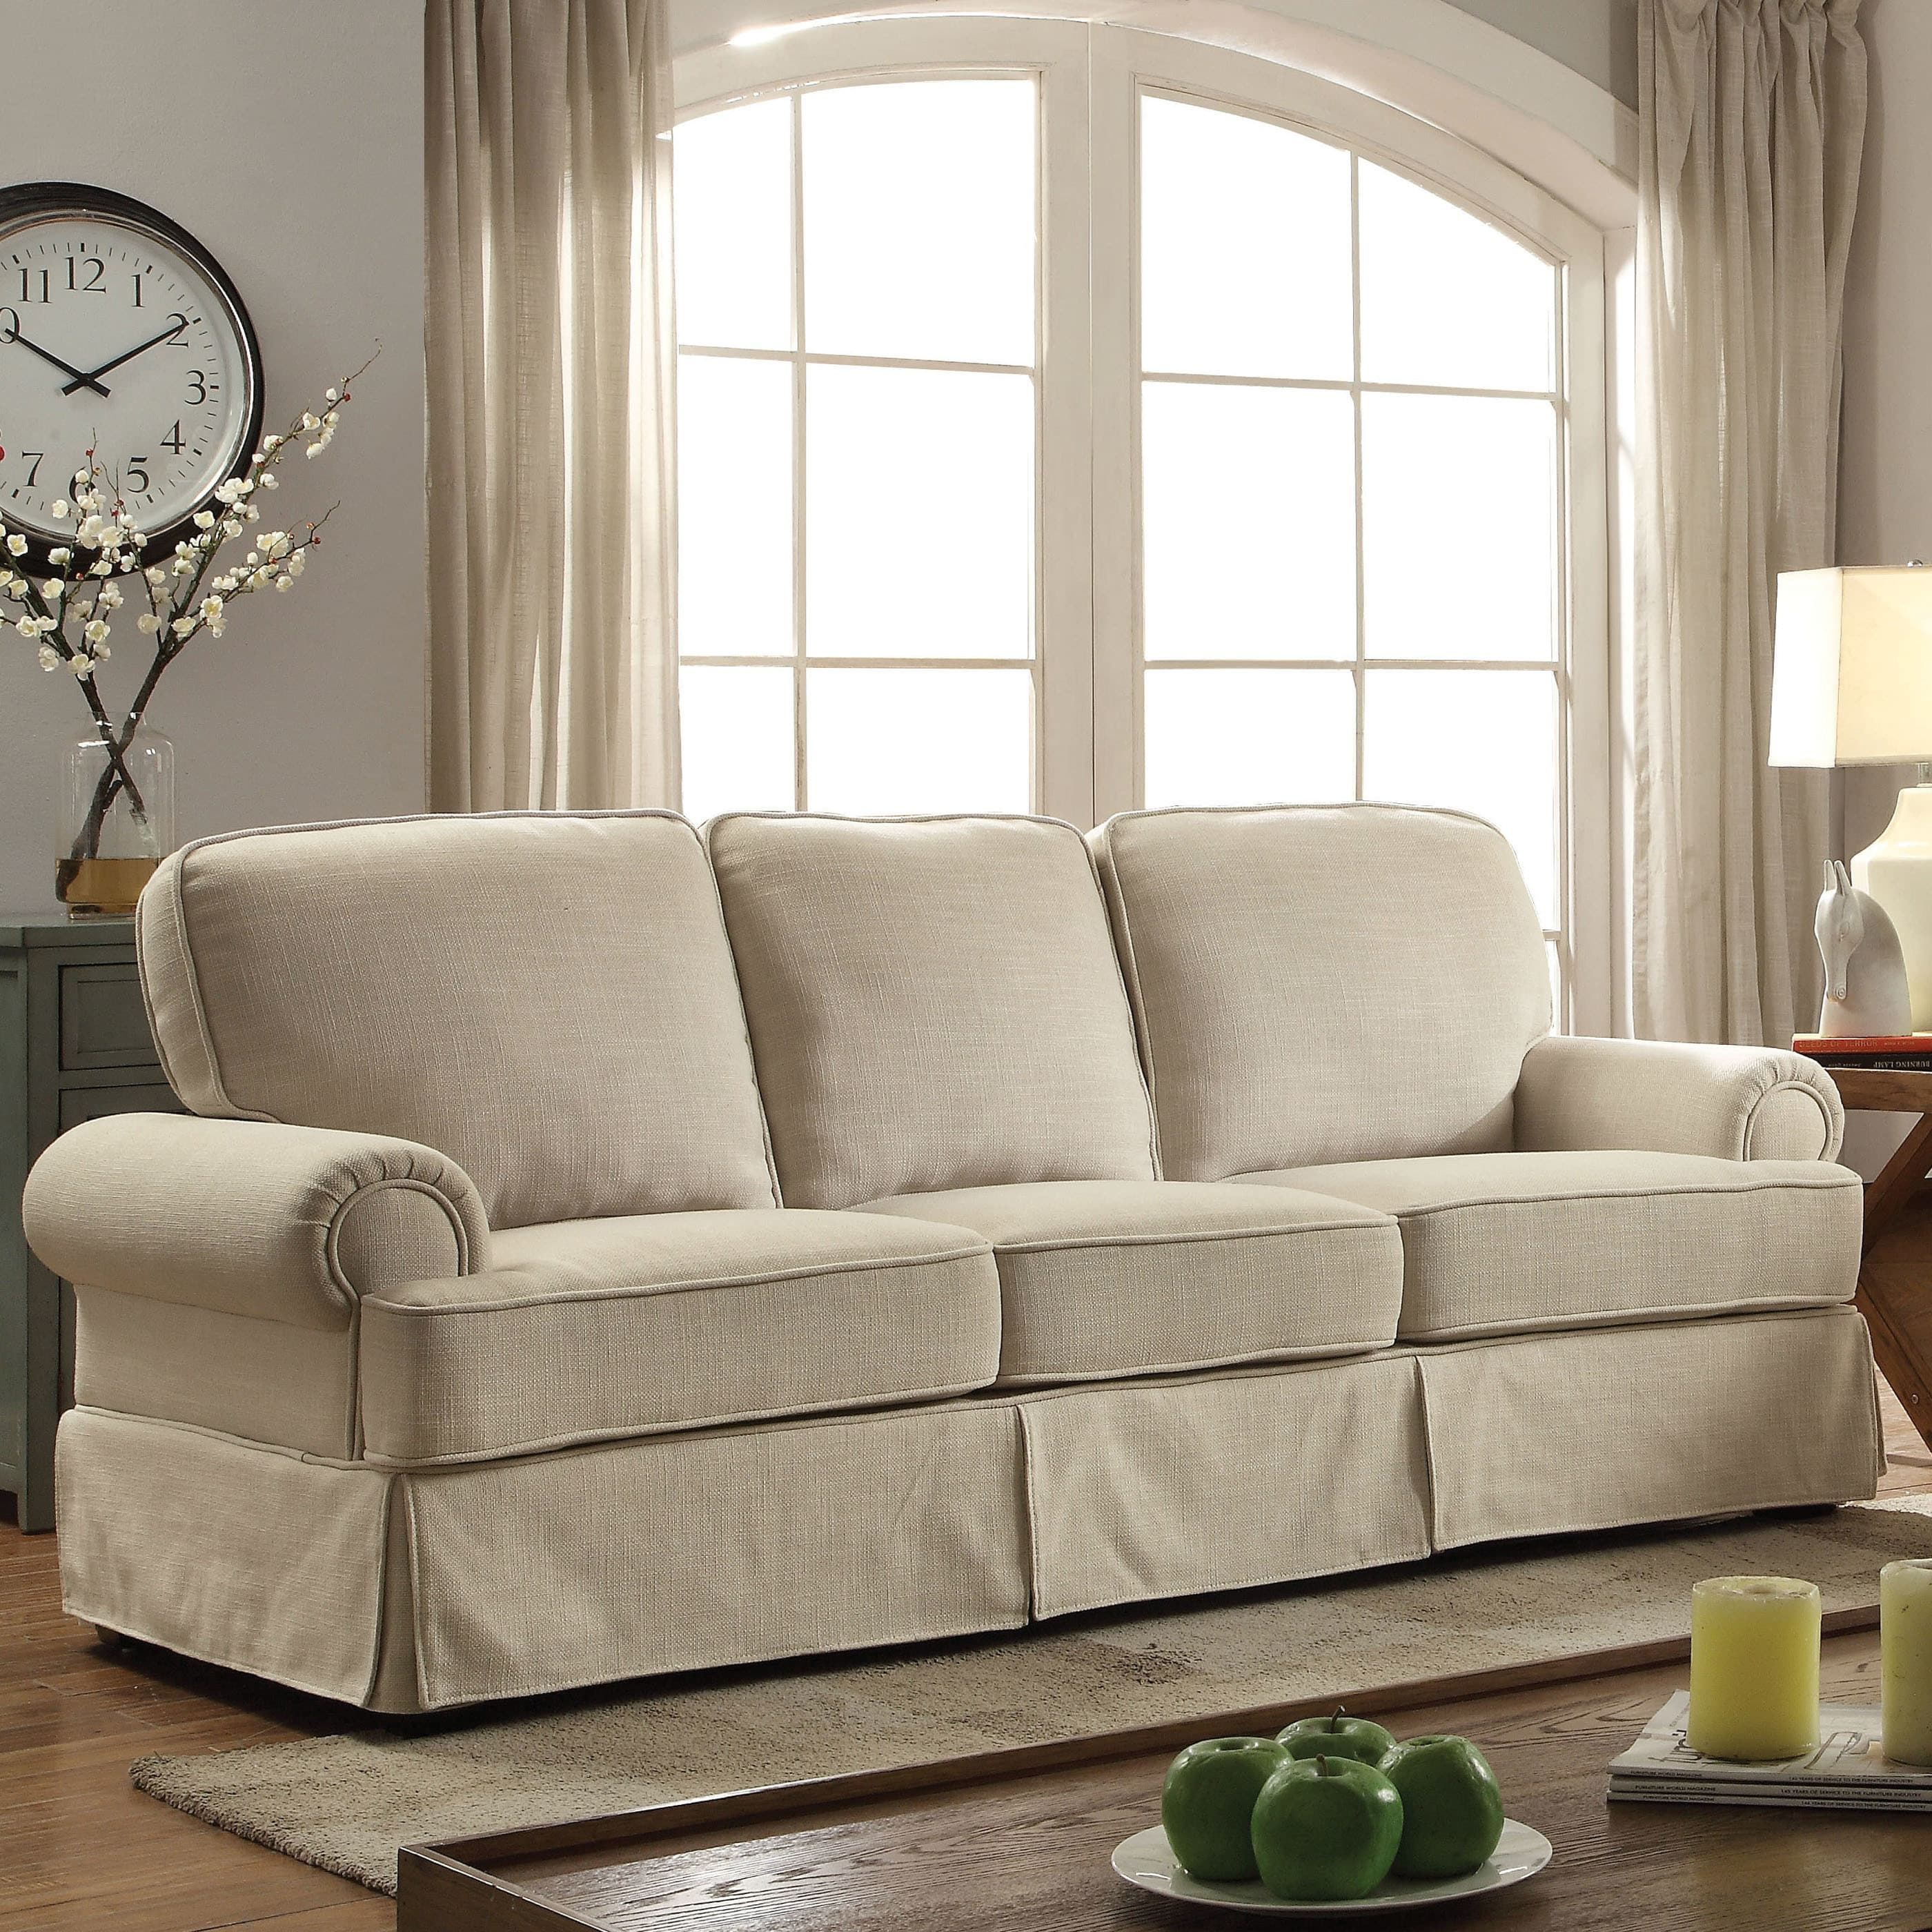 furniture of america eagleton contemporary pillow top skirted sofa beige fabric